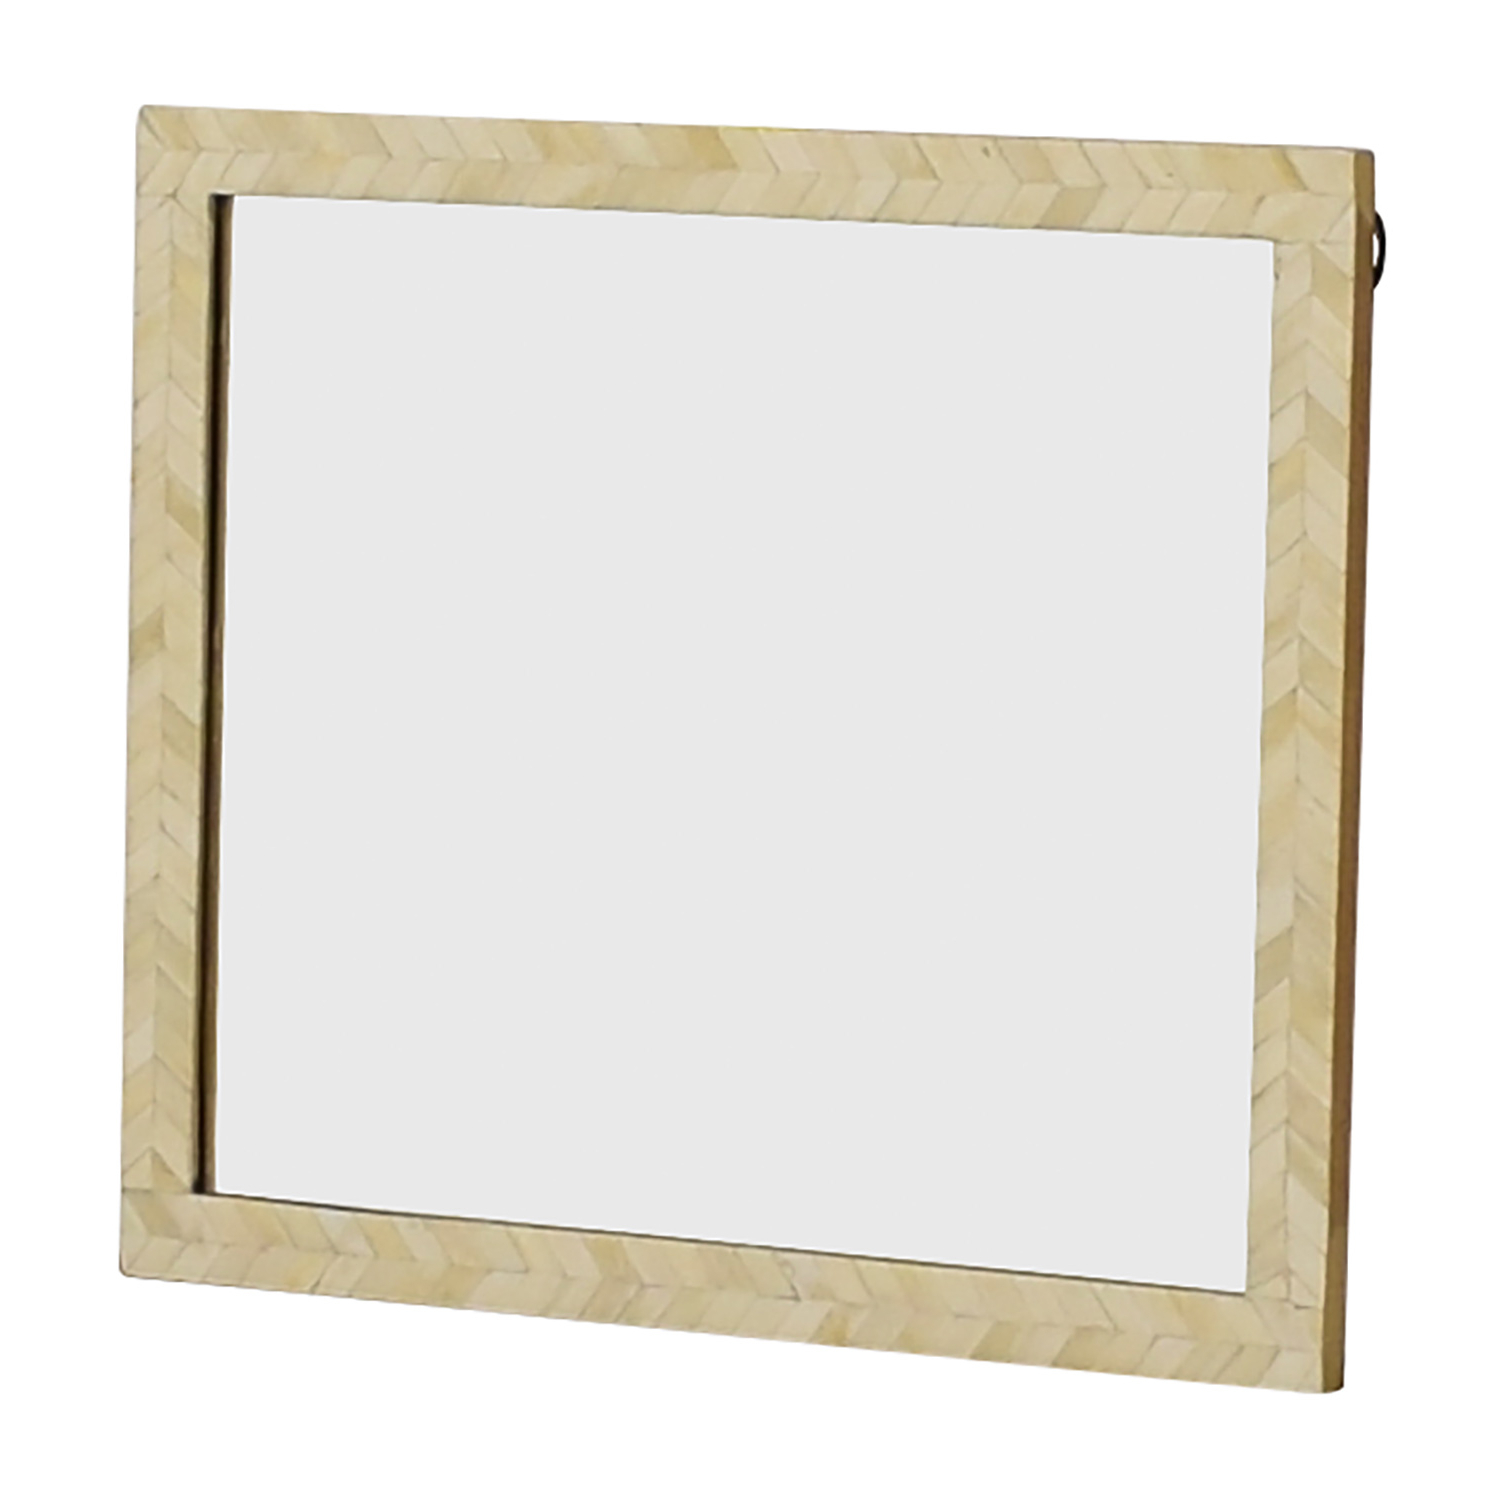 [%82% Off – West Elm West Elm Bone Inlay Wall Mirror / Decor With Famous West Elm Wall Mirrors|west Elm Wall Mirrors In Well Known 82% Off – West Elm West Elm Bone Inlay Wall Mirror / Decor|most Up To Date West Elm Wall Mirrors Pertaining To 82% Off – West Elm West Elm Bone Inlay Wall Mirror / Decor|current 82% Off – West Elm West Elm Bone Inlay Wall Mirror / Decor In West Elm Wall Mirrors%] (View 6 of 20)